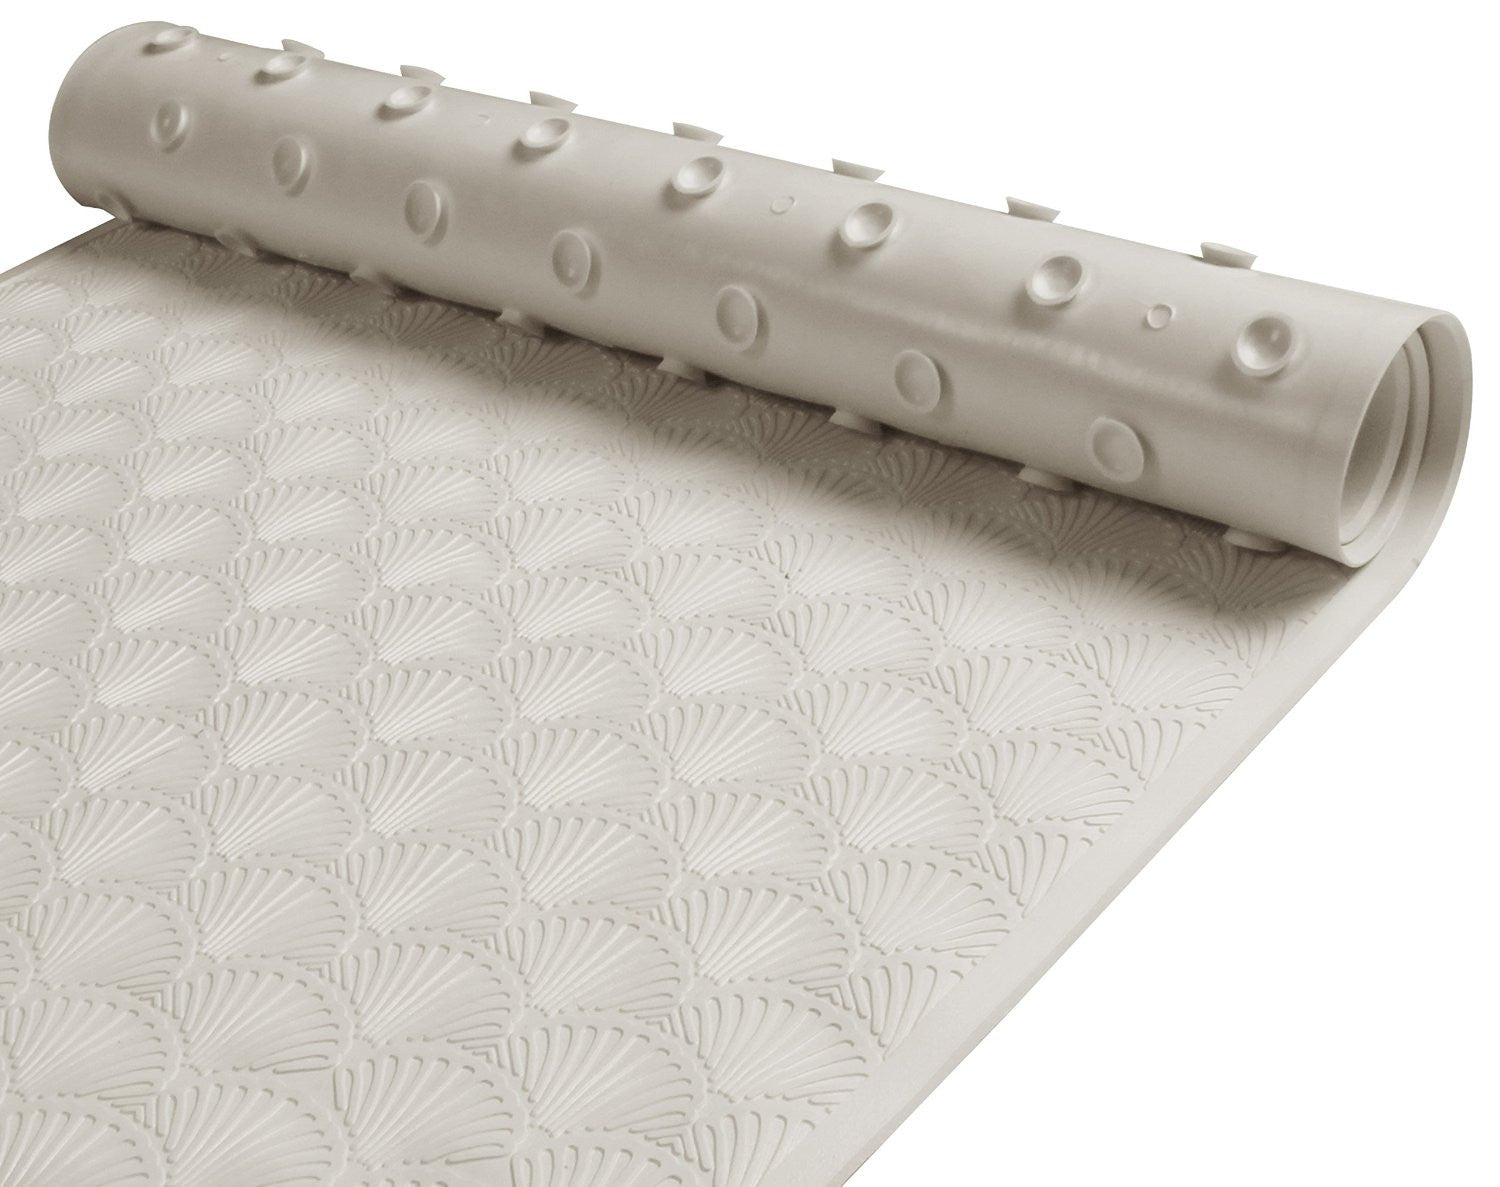 Solid Silicon Rubber Bathtub Mat